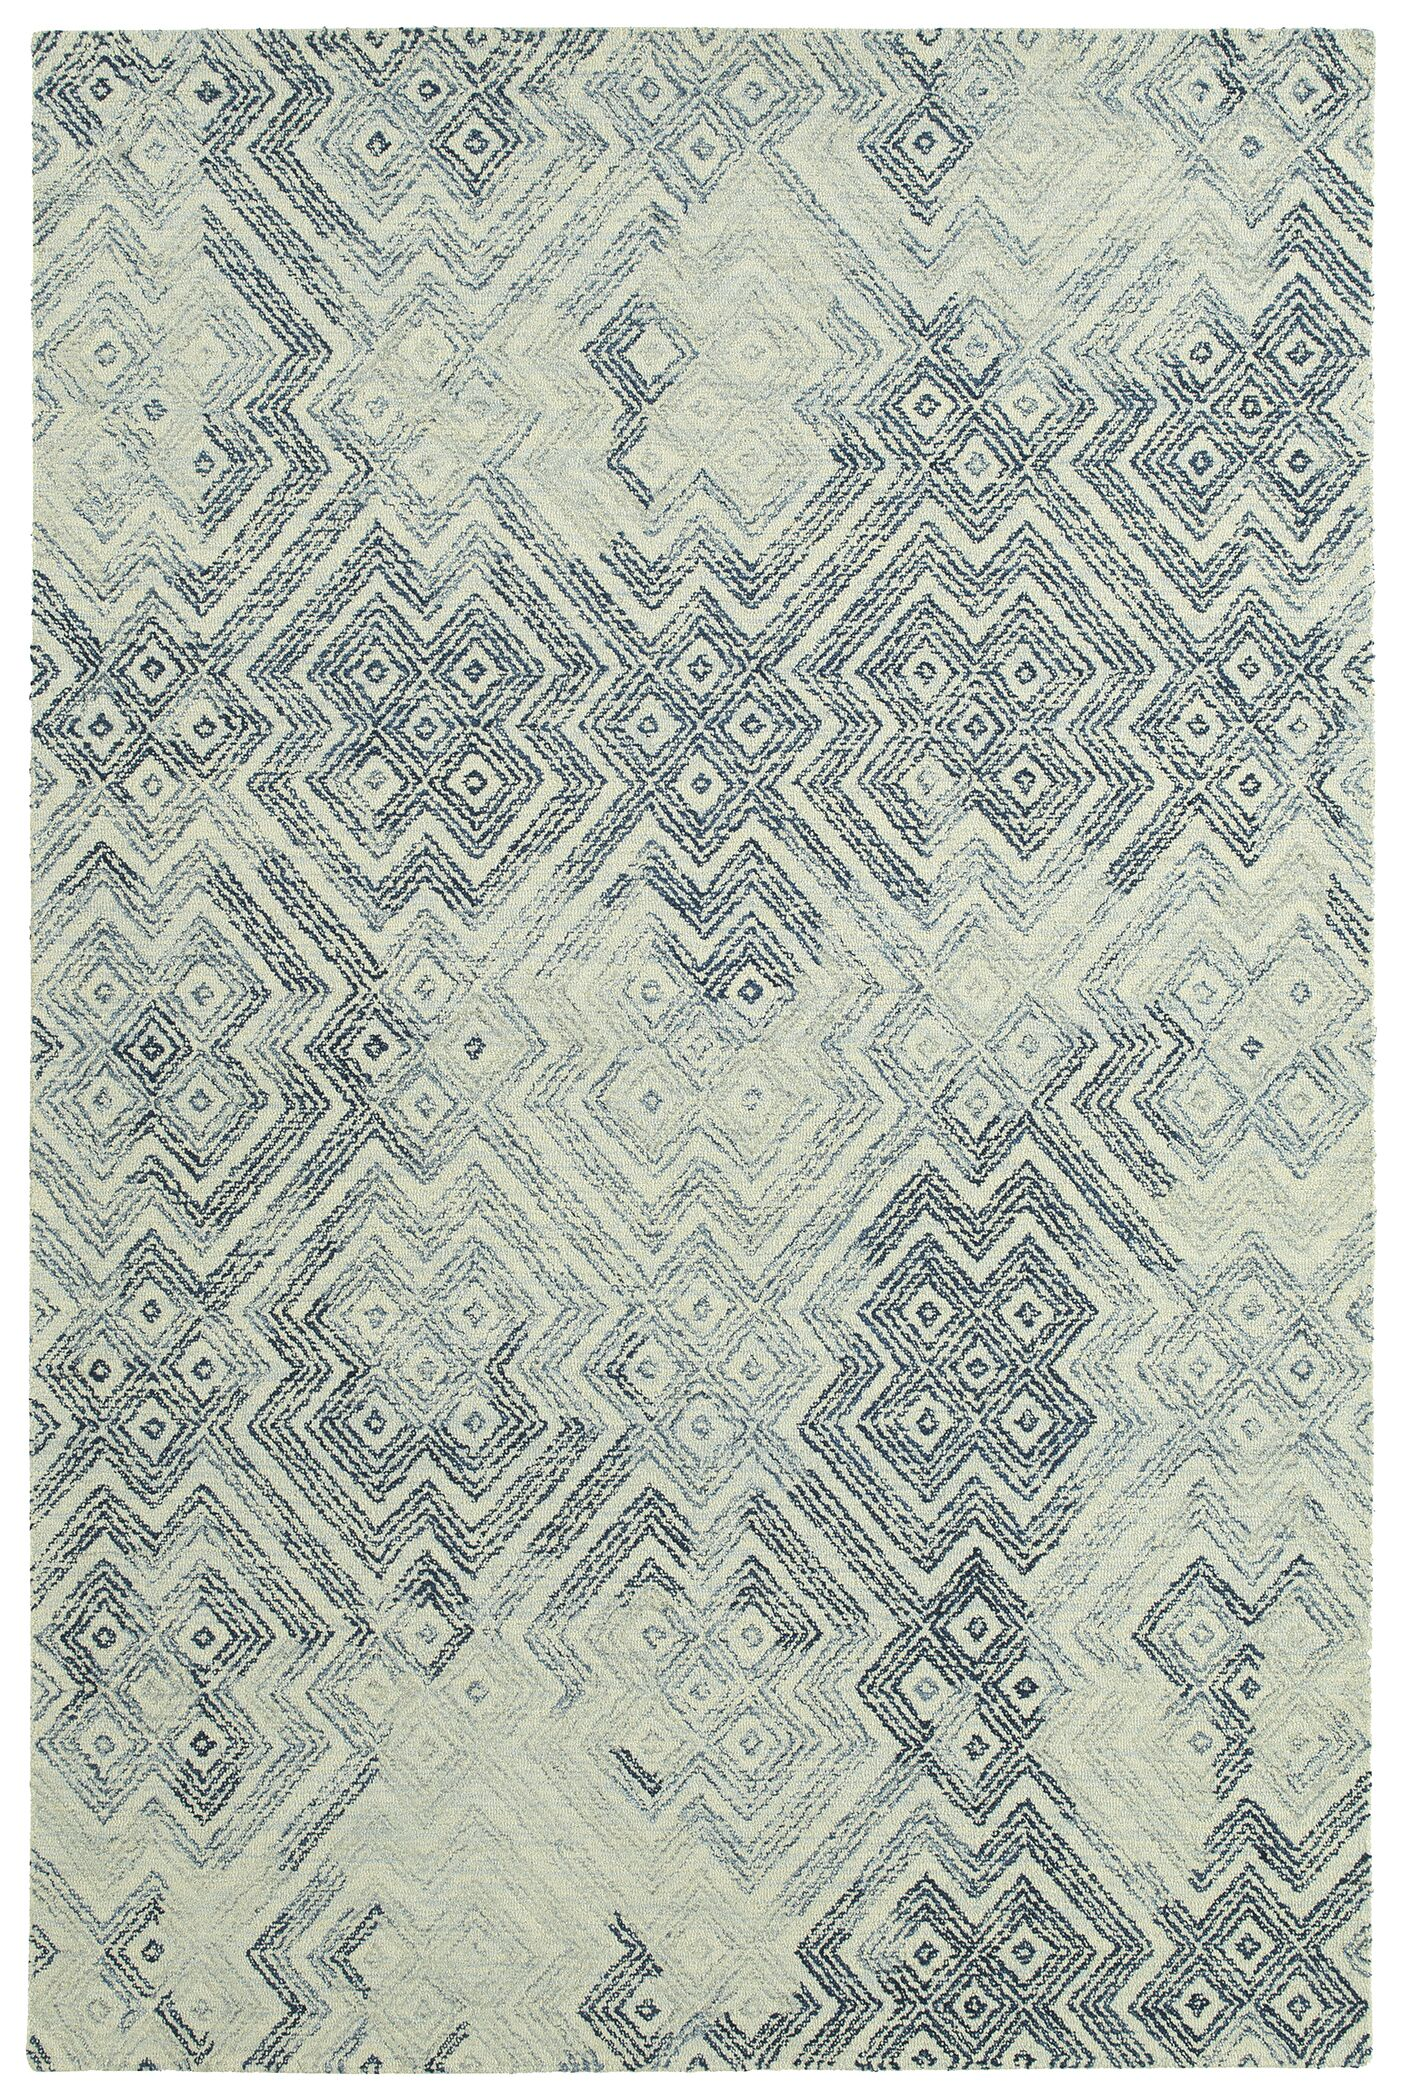 Stockman Hand-Tufted Wool Ivory/Denim Area Rug Rug Size: Rectangle 5' x 7'9